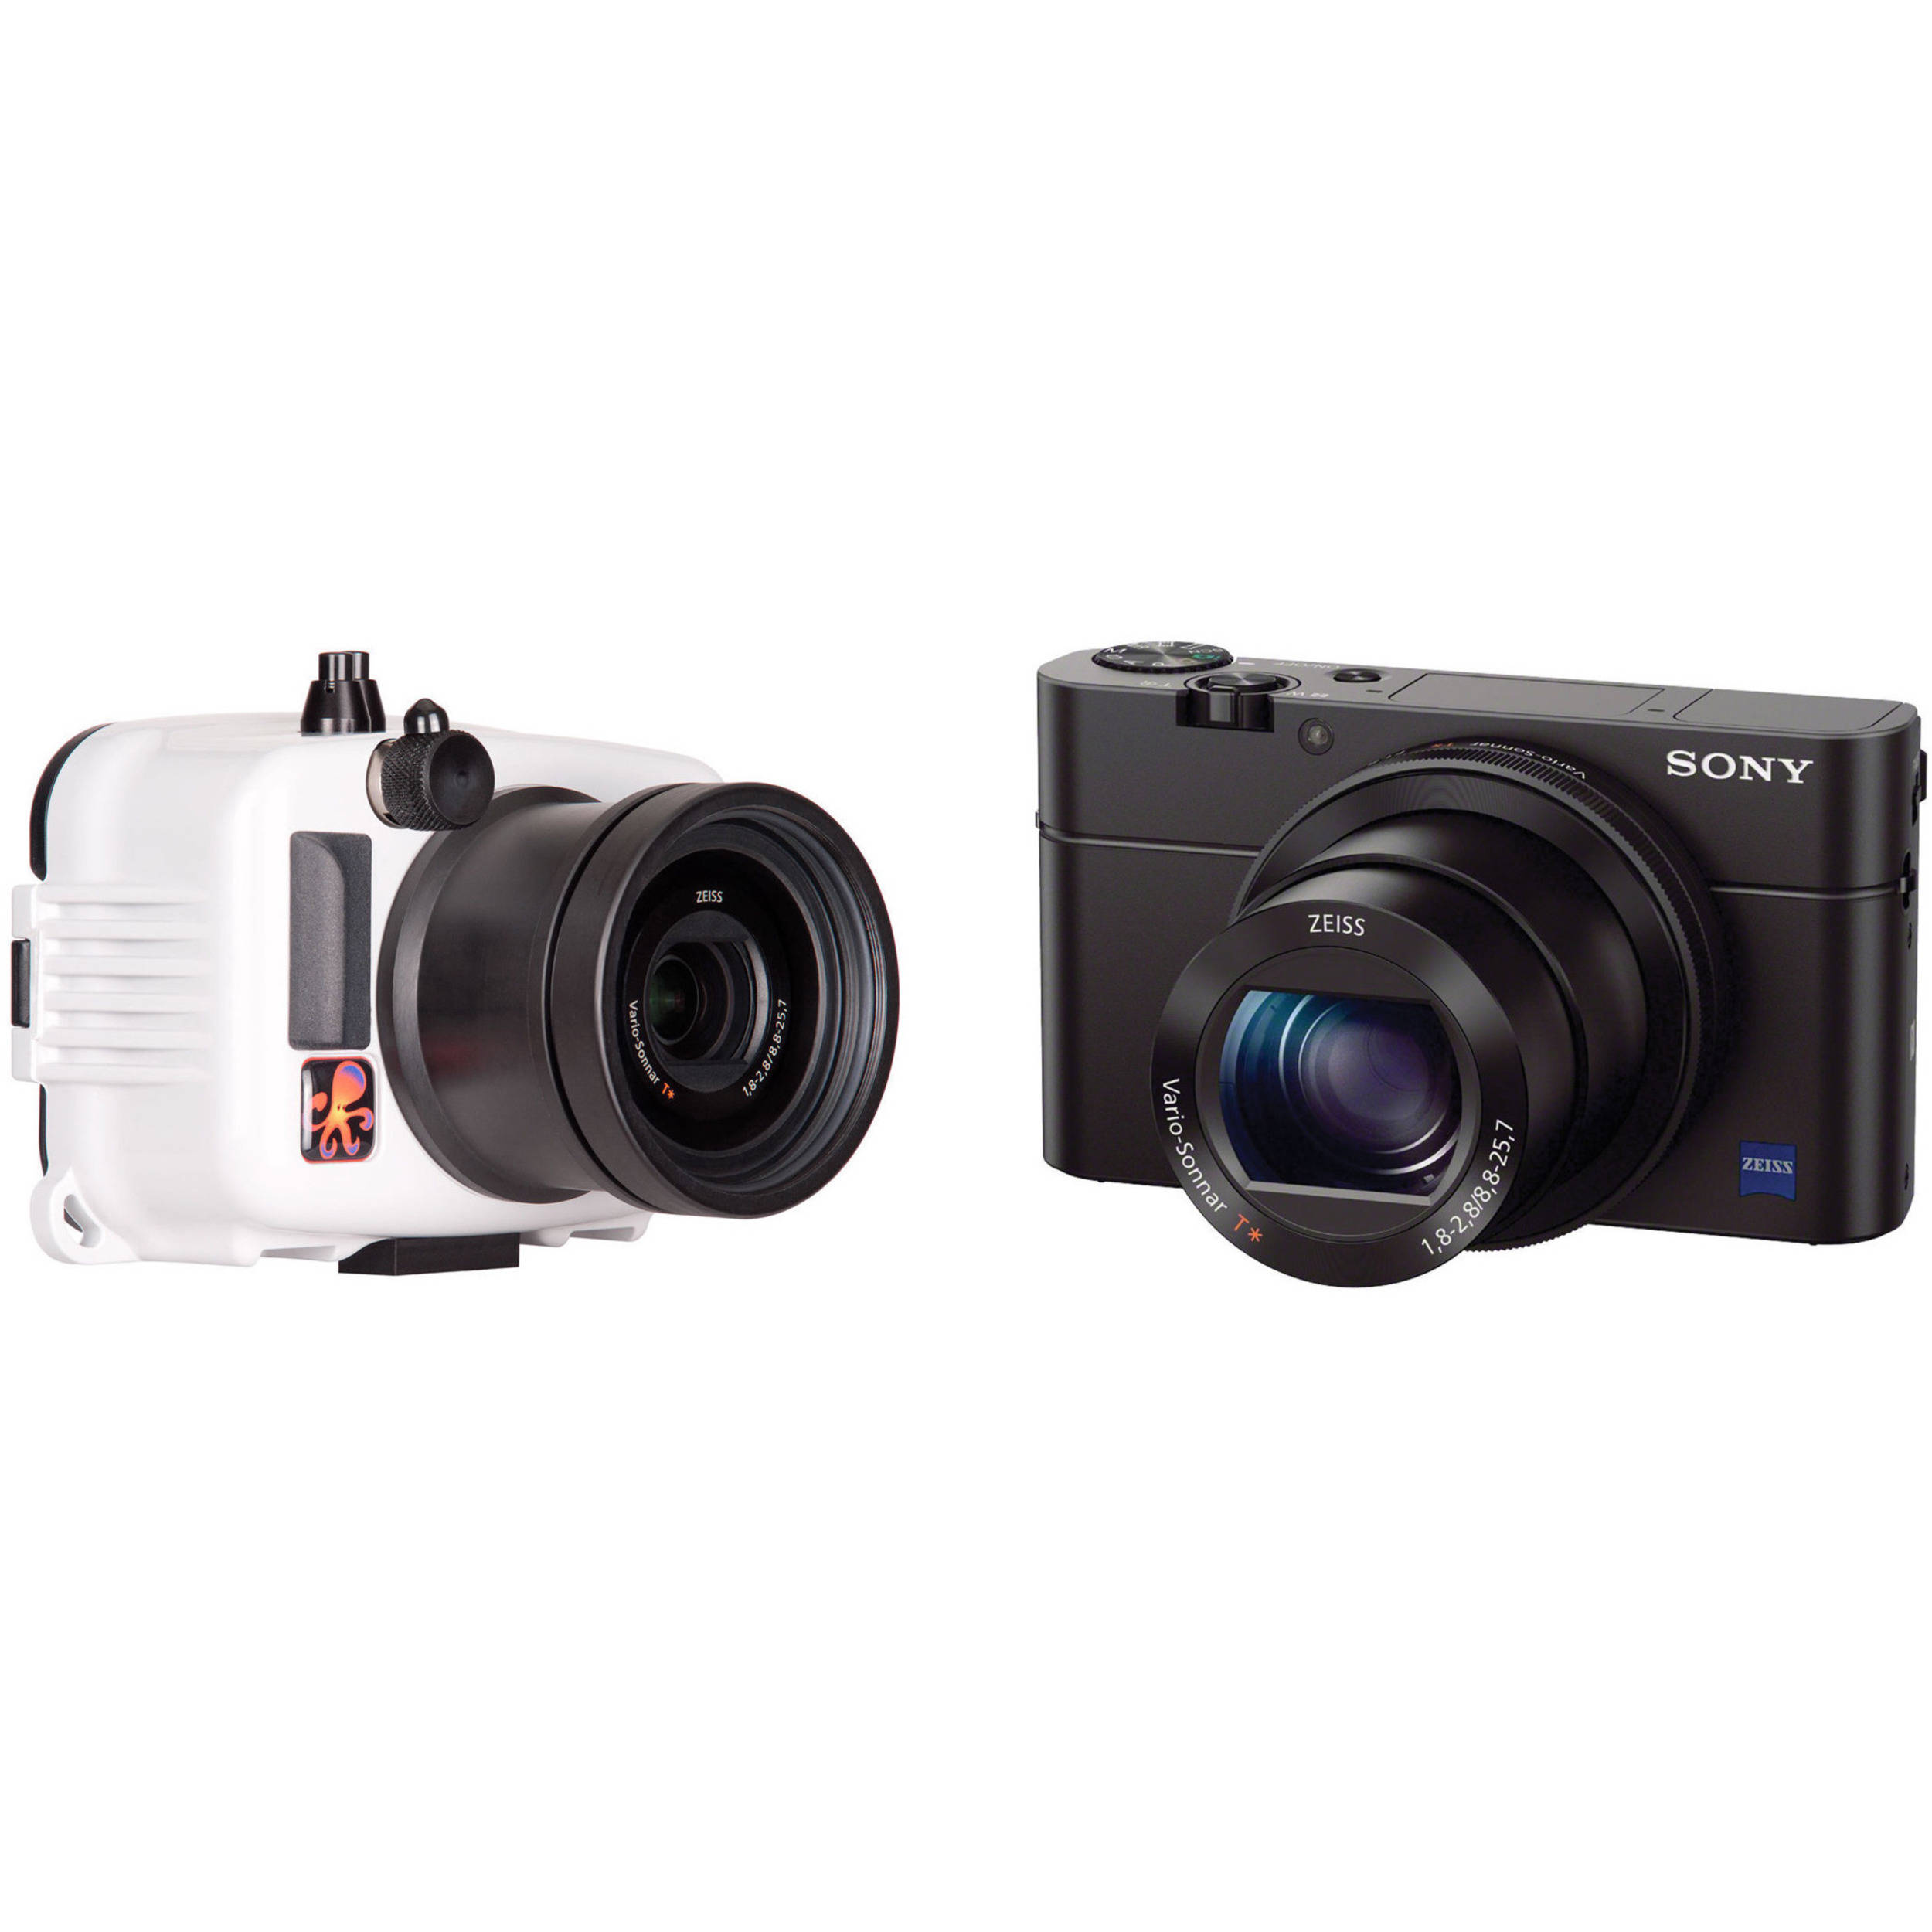 Ikelite Underwater Action Housing and Sony Cyber-shot RX100 III Camera Kit